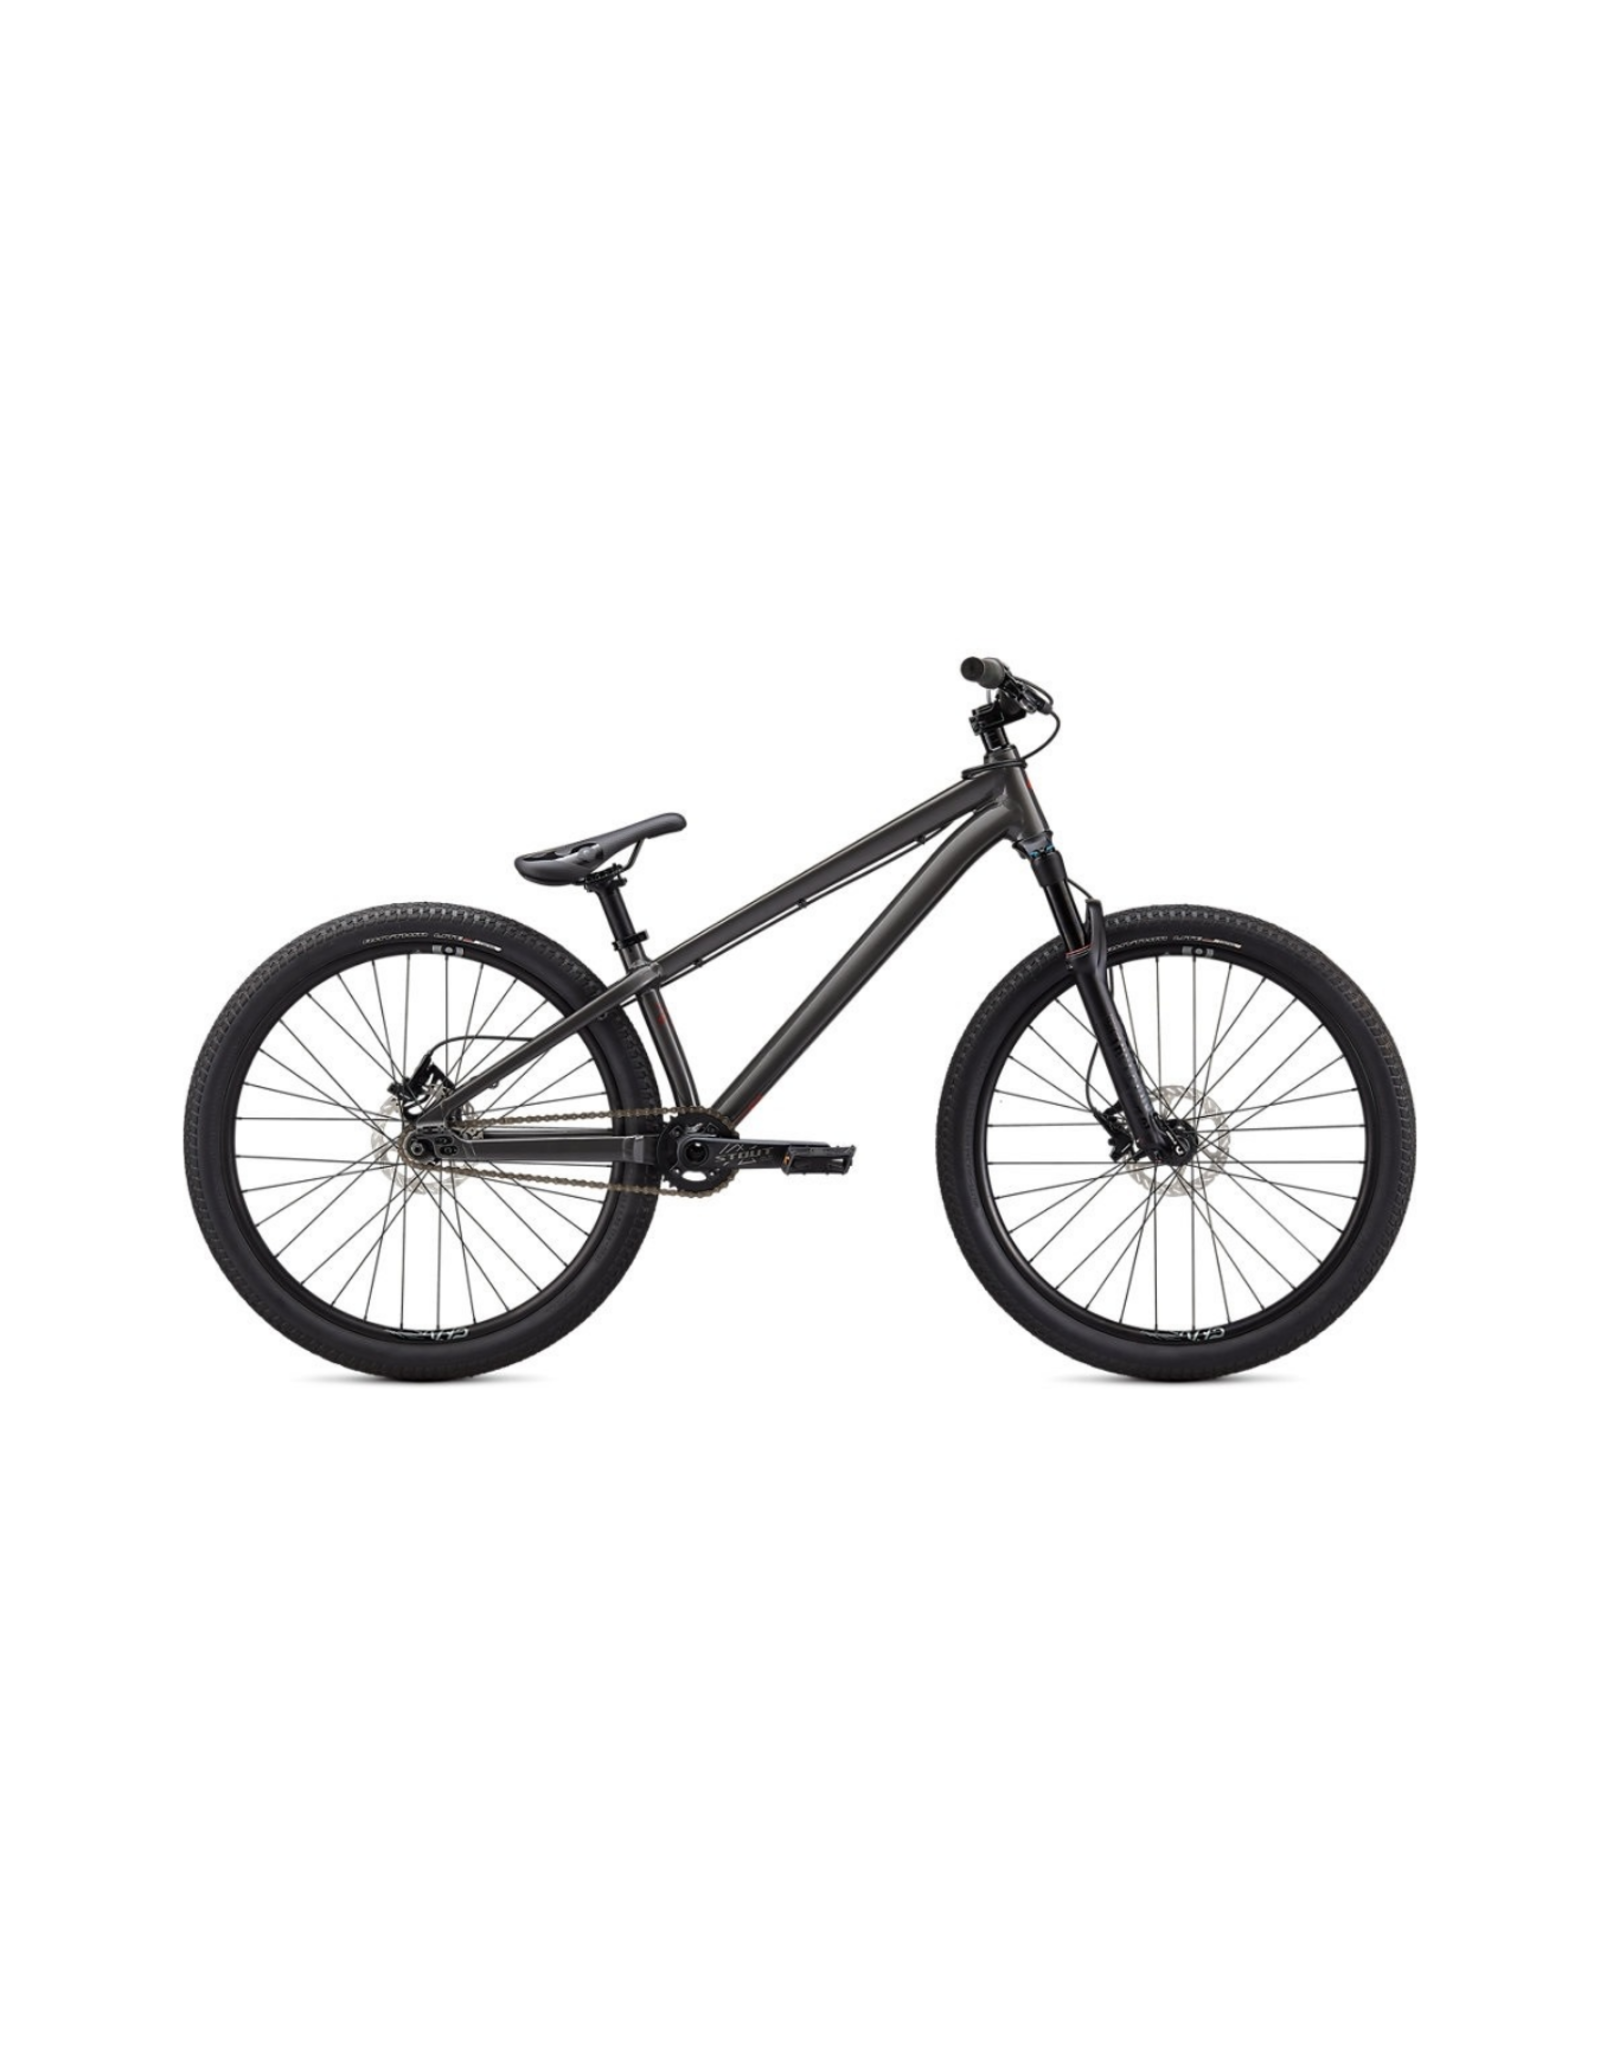 Specialized P3 LARGE SMK/REDWD  22.5 TT